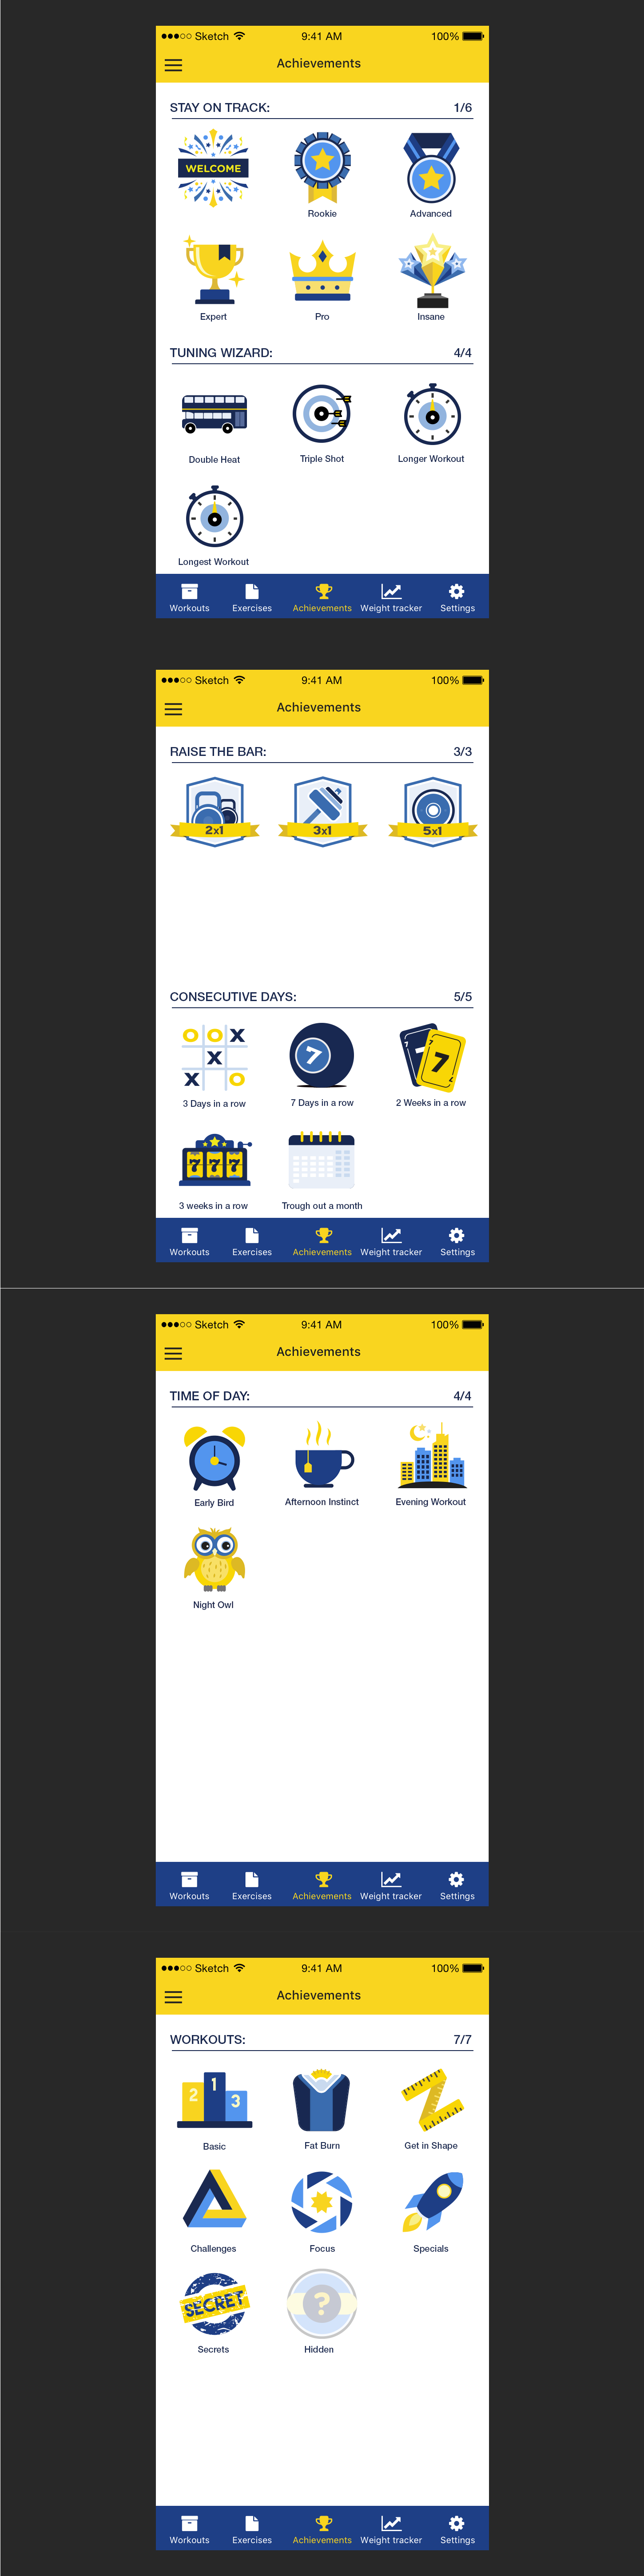 Create a gamification icon set for fitness app